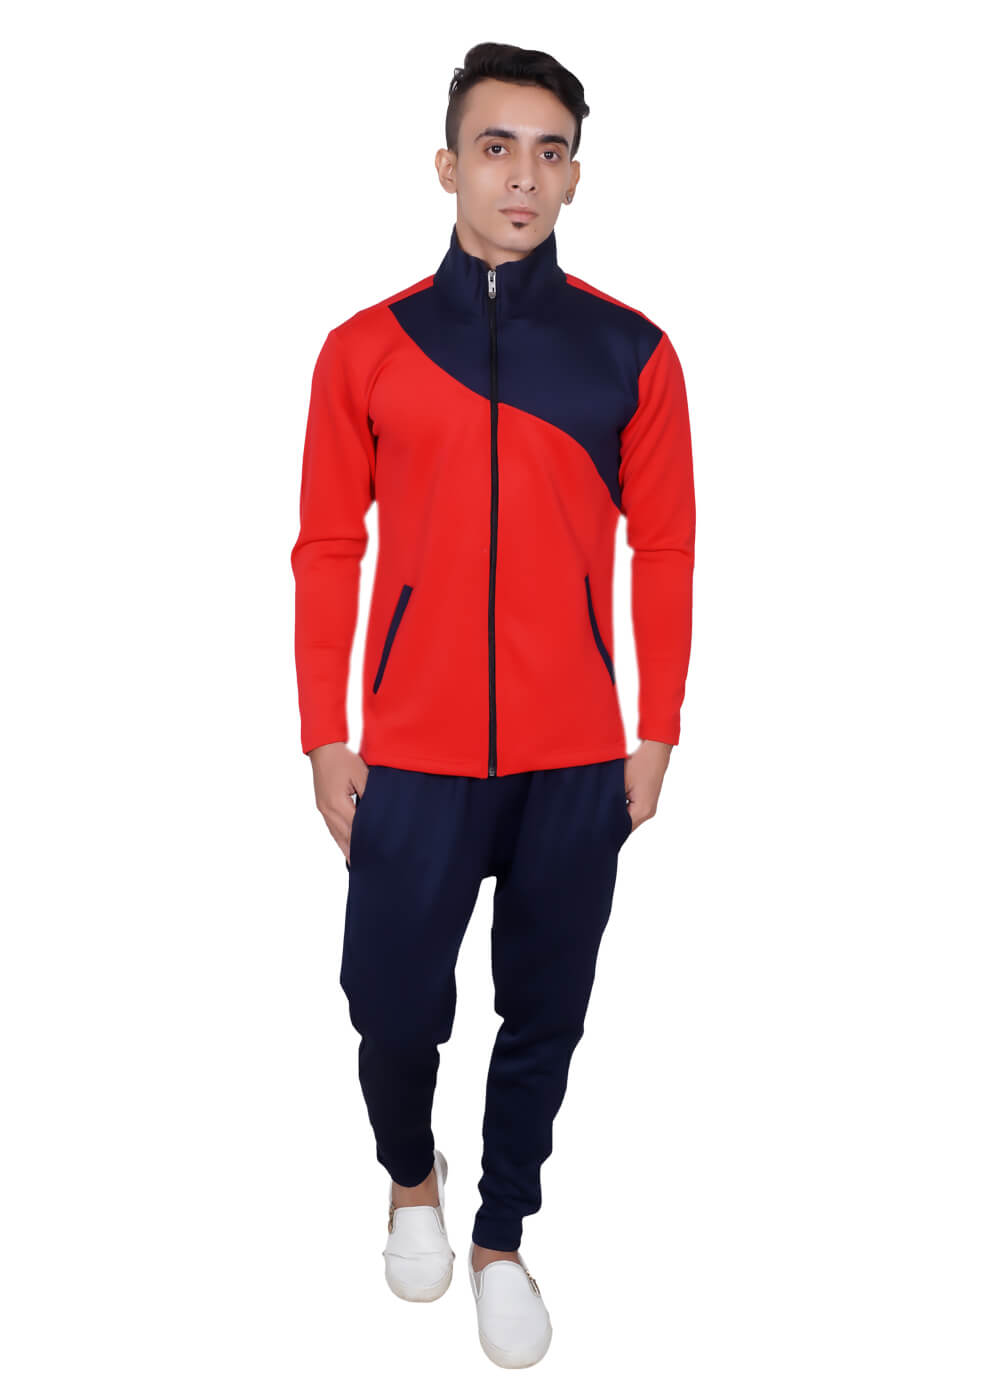 Cheap Tracksuits Manufacturers in Tanzania